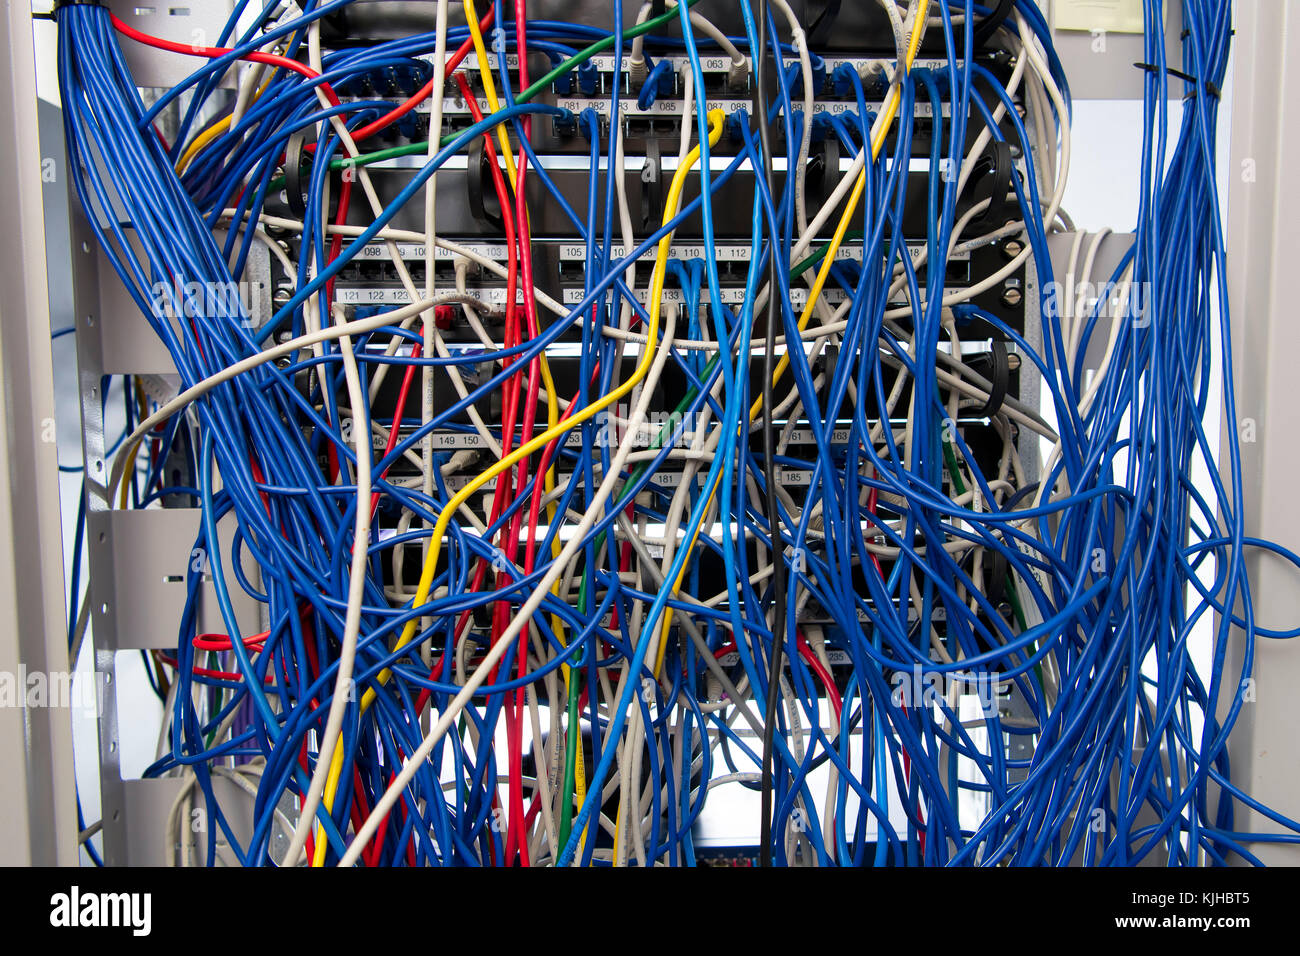 A computer network server cabinet with a mess of tangled blue coloured  cables. - Stock